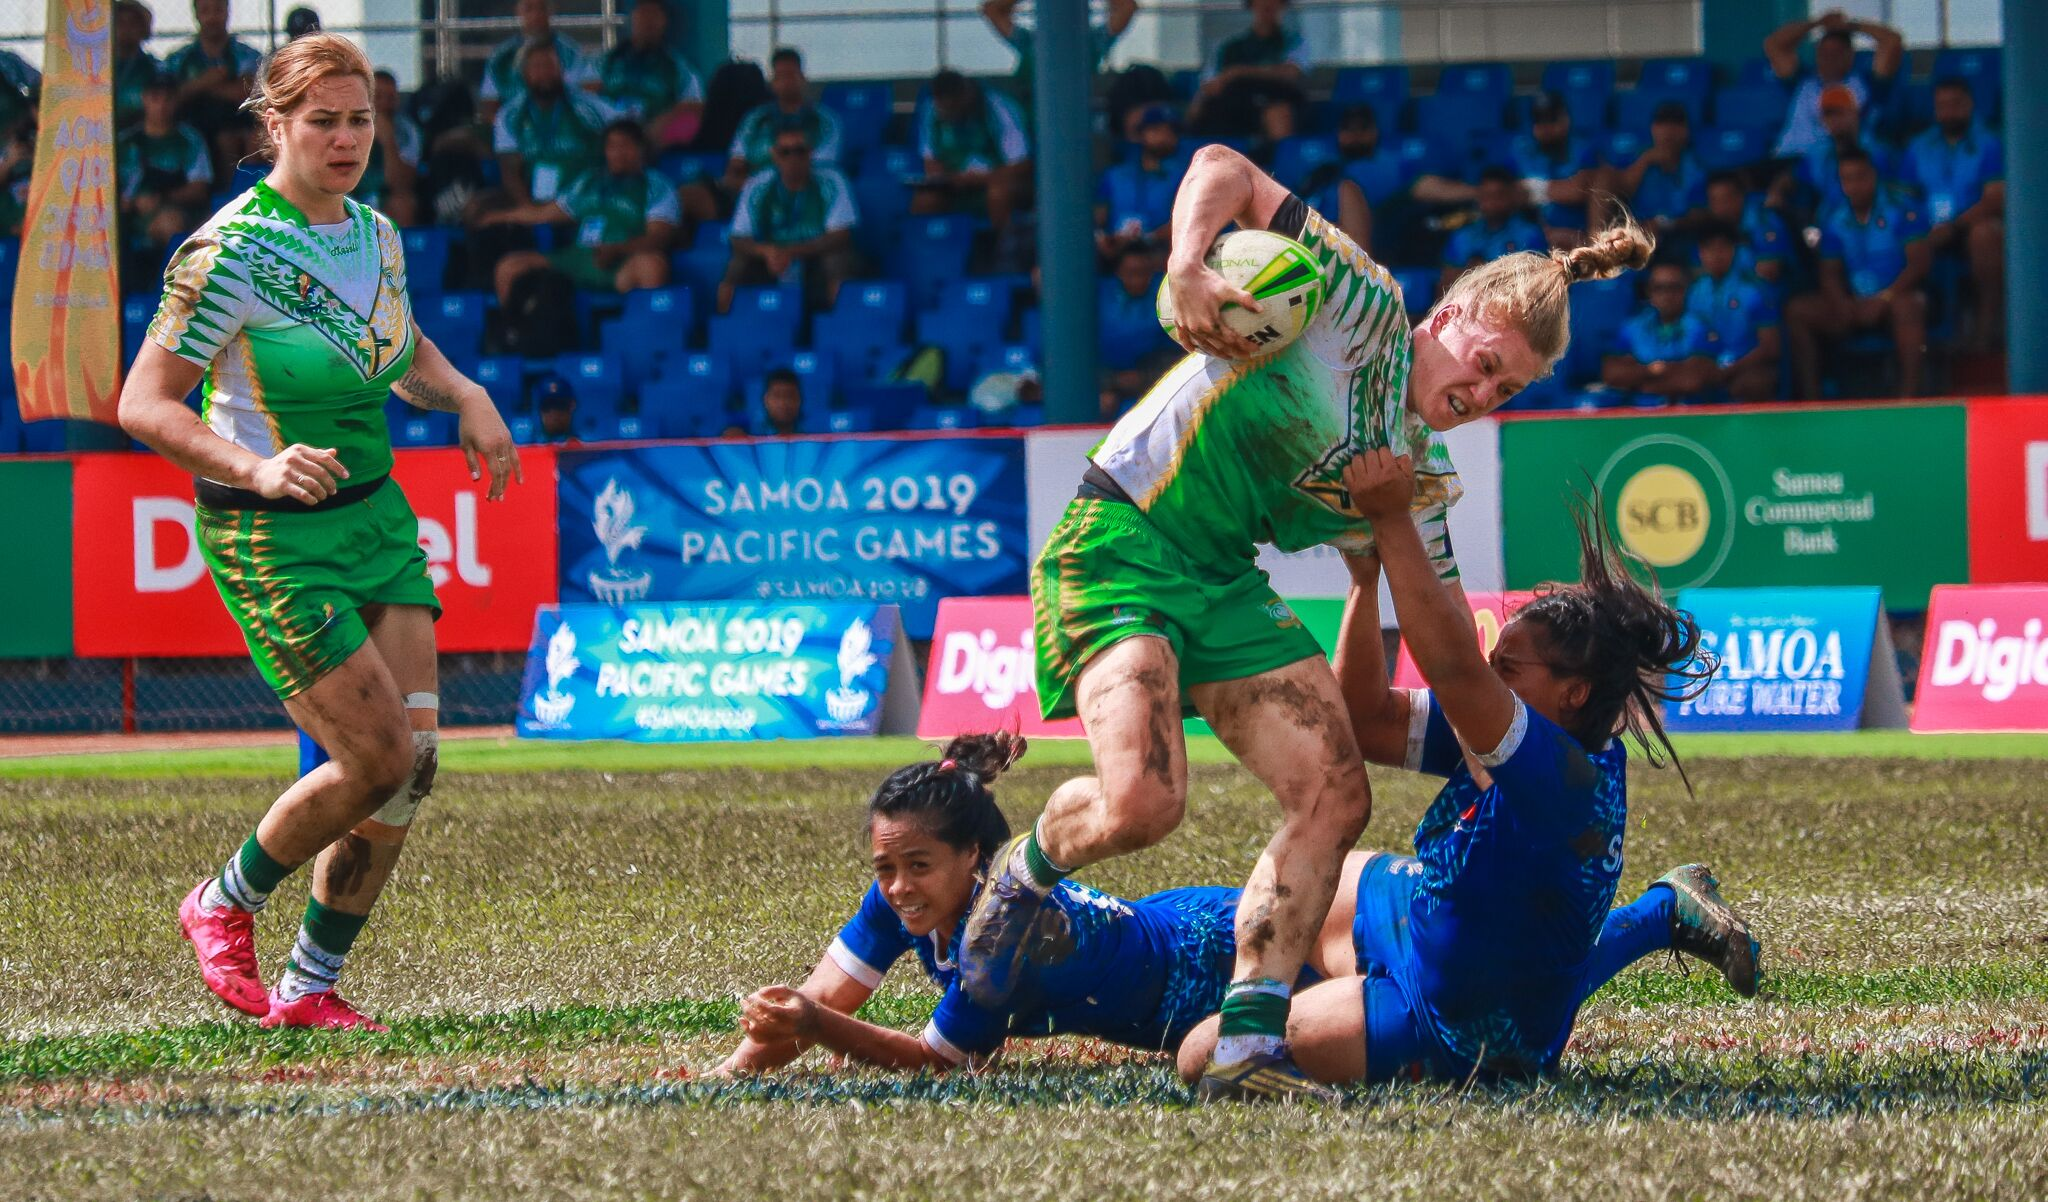 Samoa 2019: Day one of competition